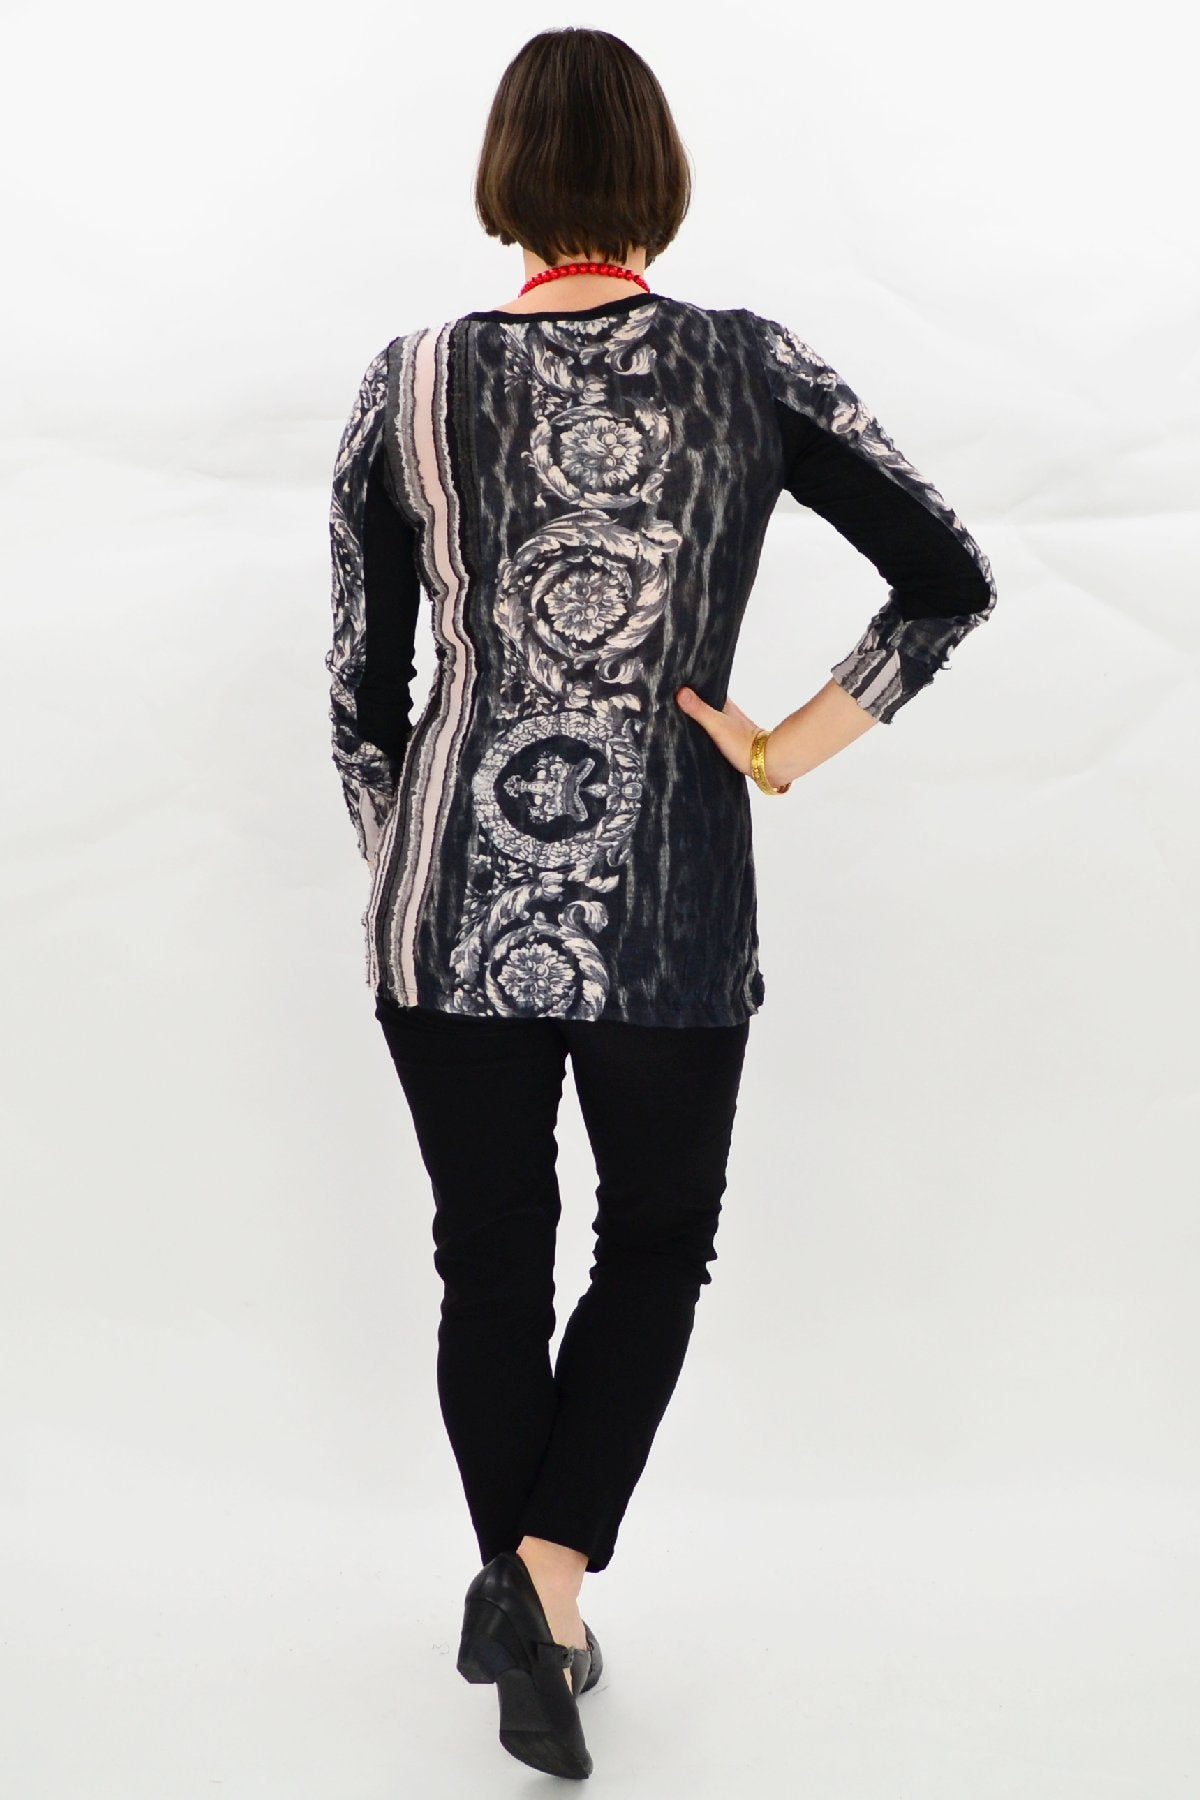 Mary May Tunic Top | I Love Tunics | Tunic Tops | Tunic | Tunic Dresses  | womens clothing online